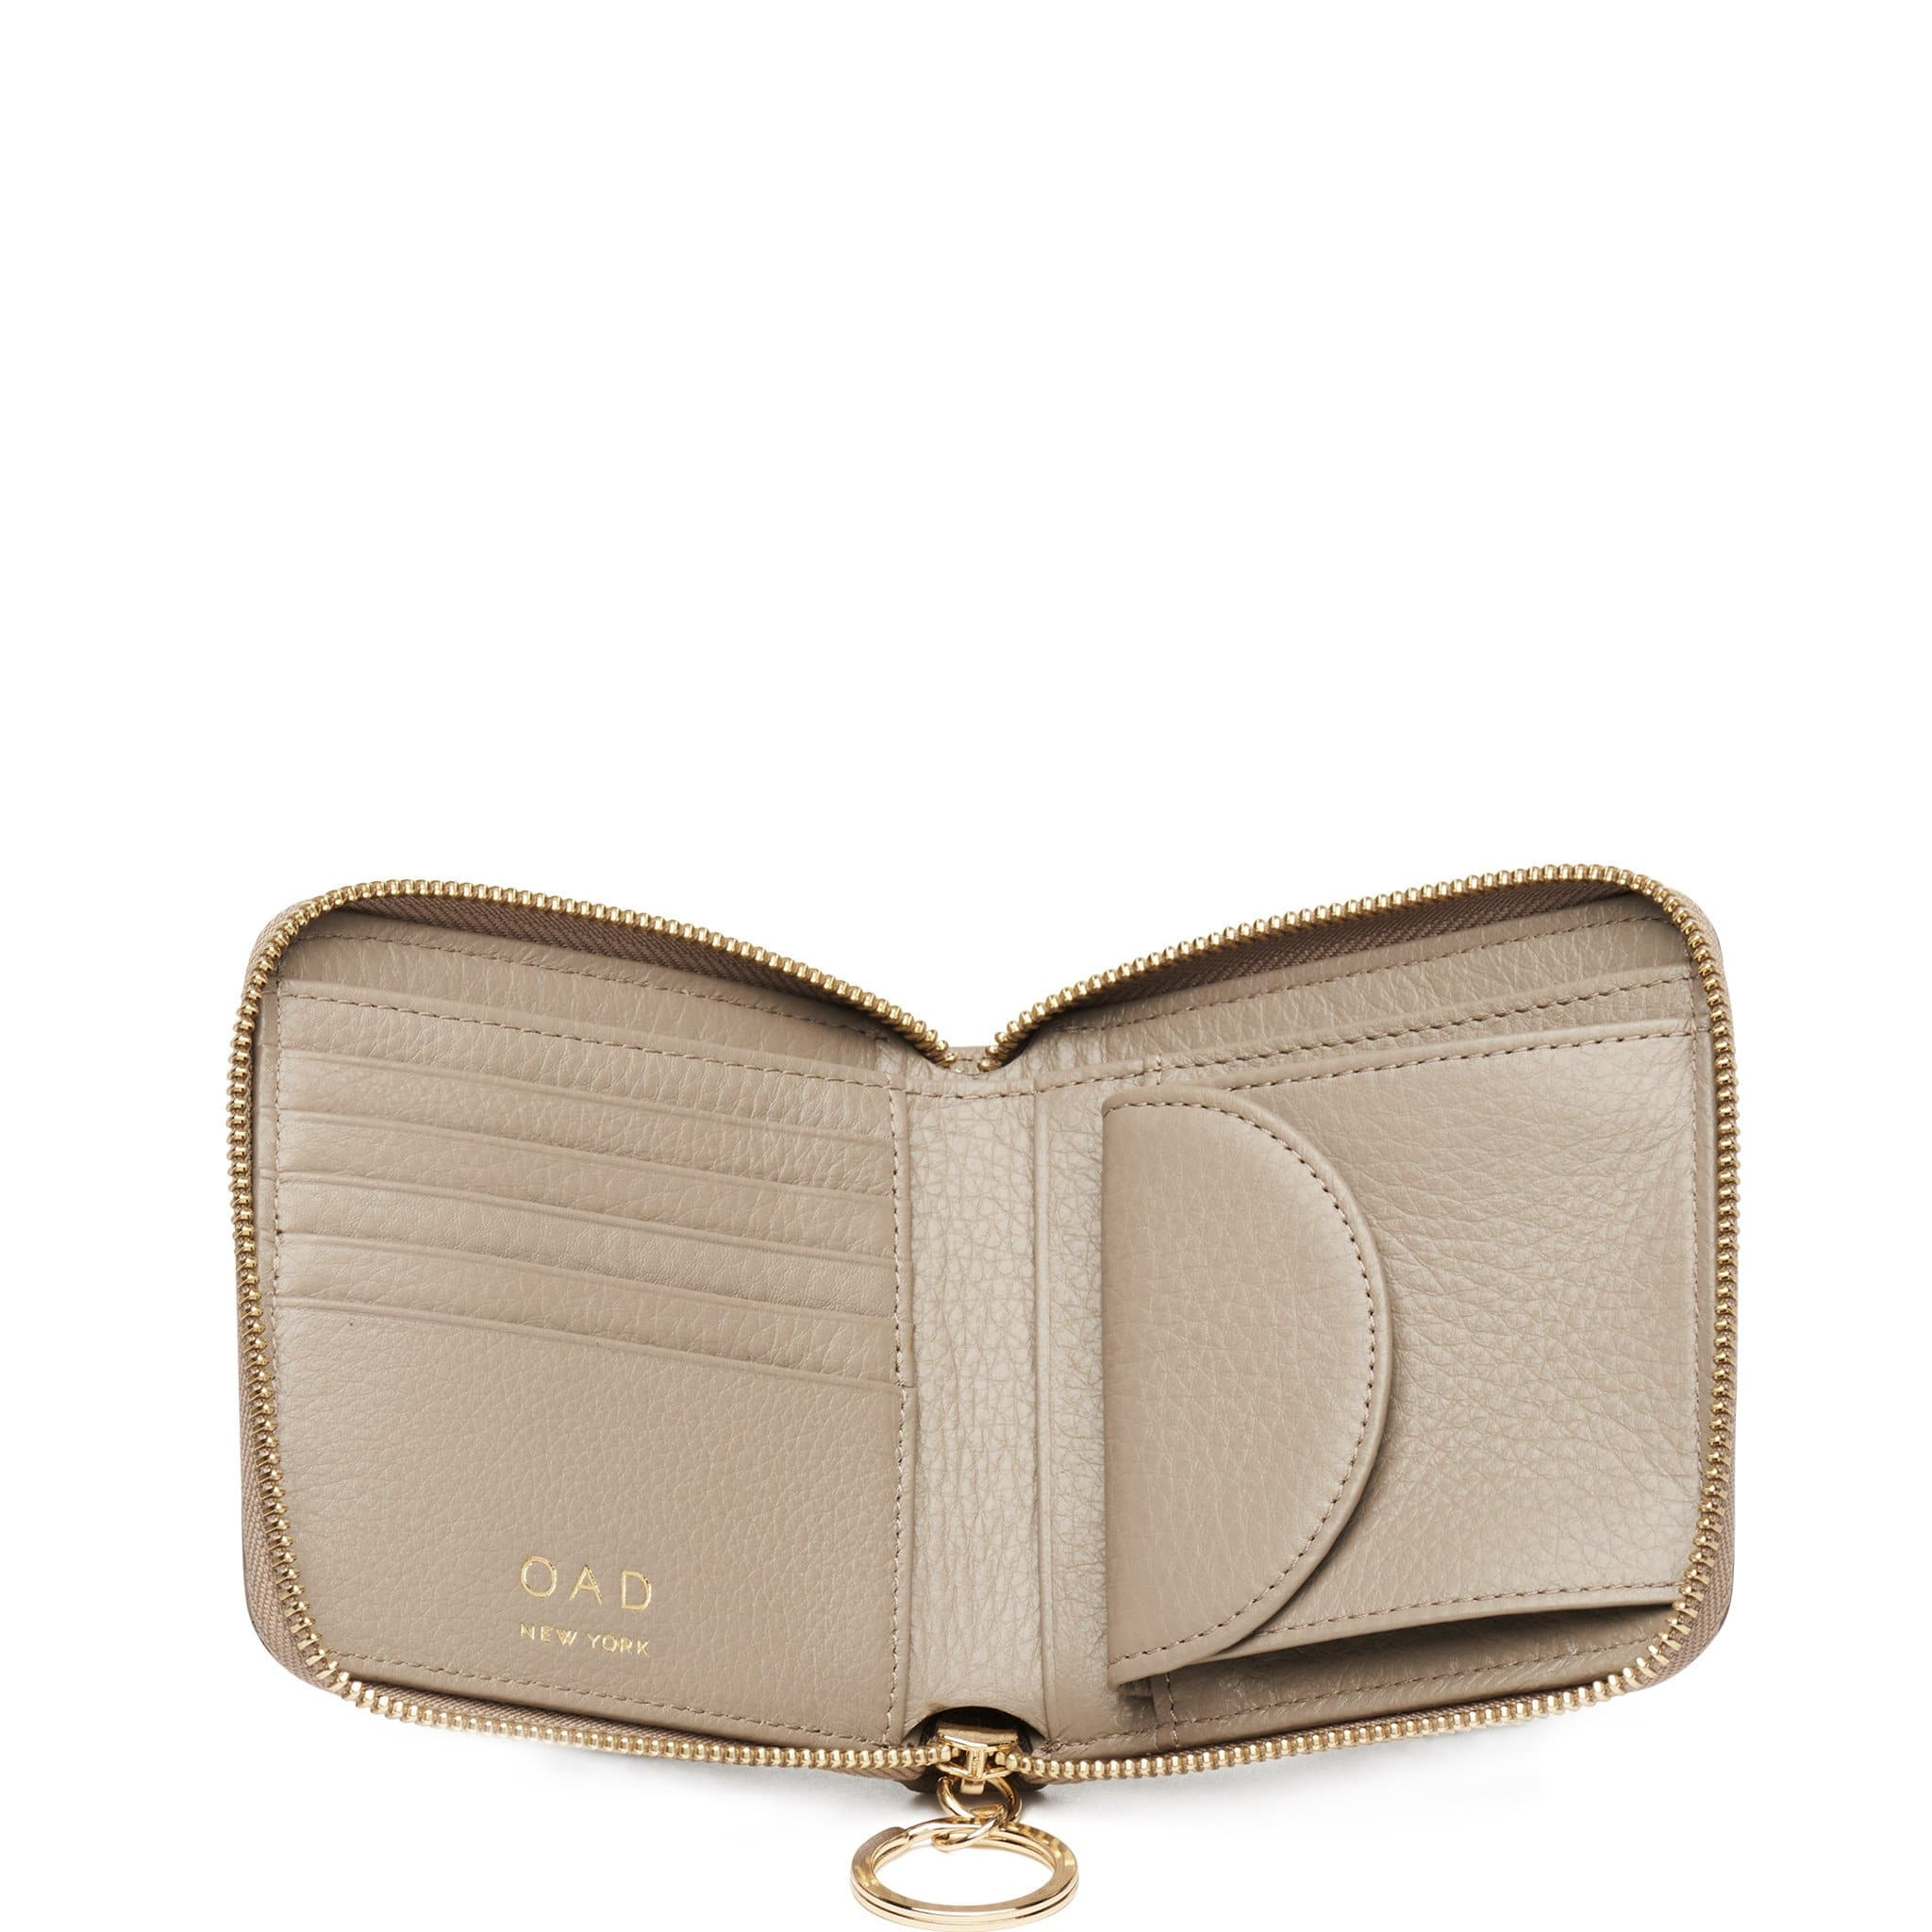 Half Zip Around Wallet - Taupe - OAD NEW YORK - 2